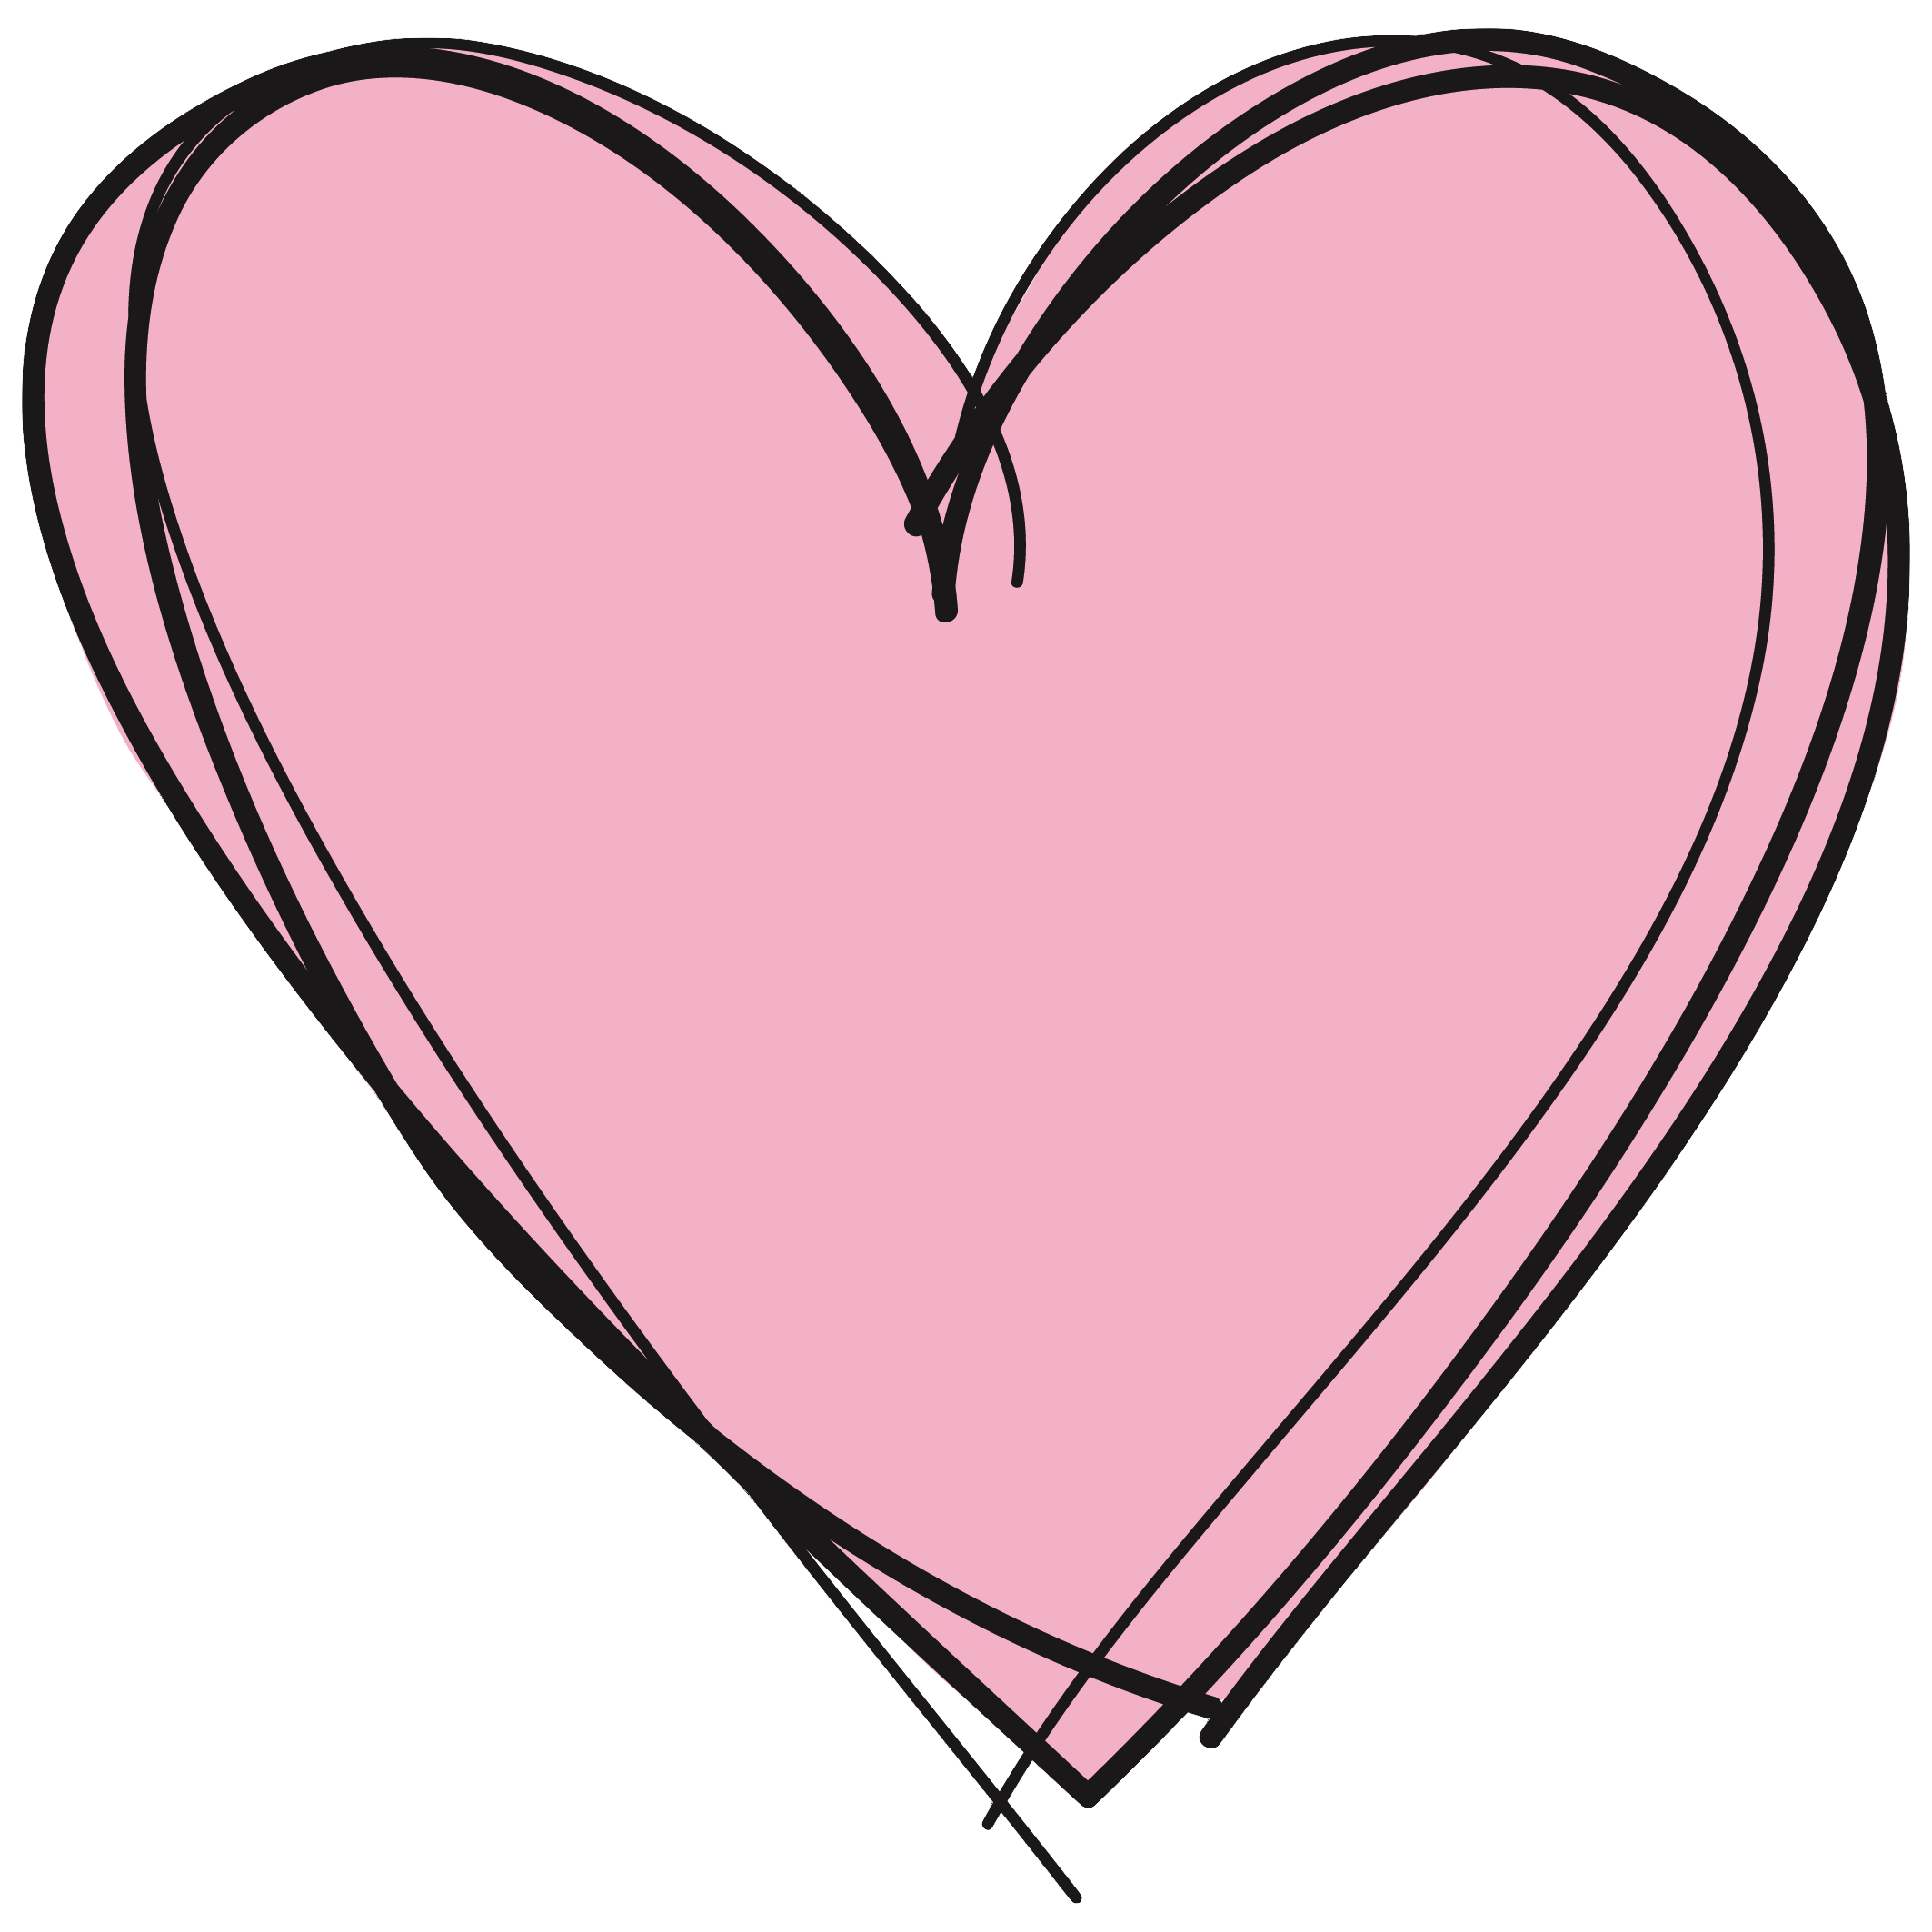 Hearts png. Heart free images download